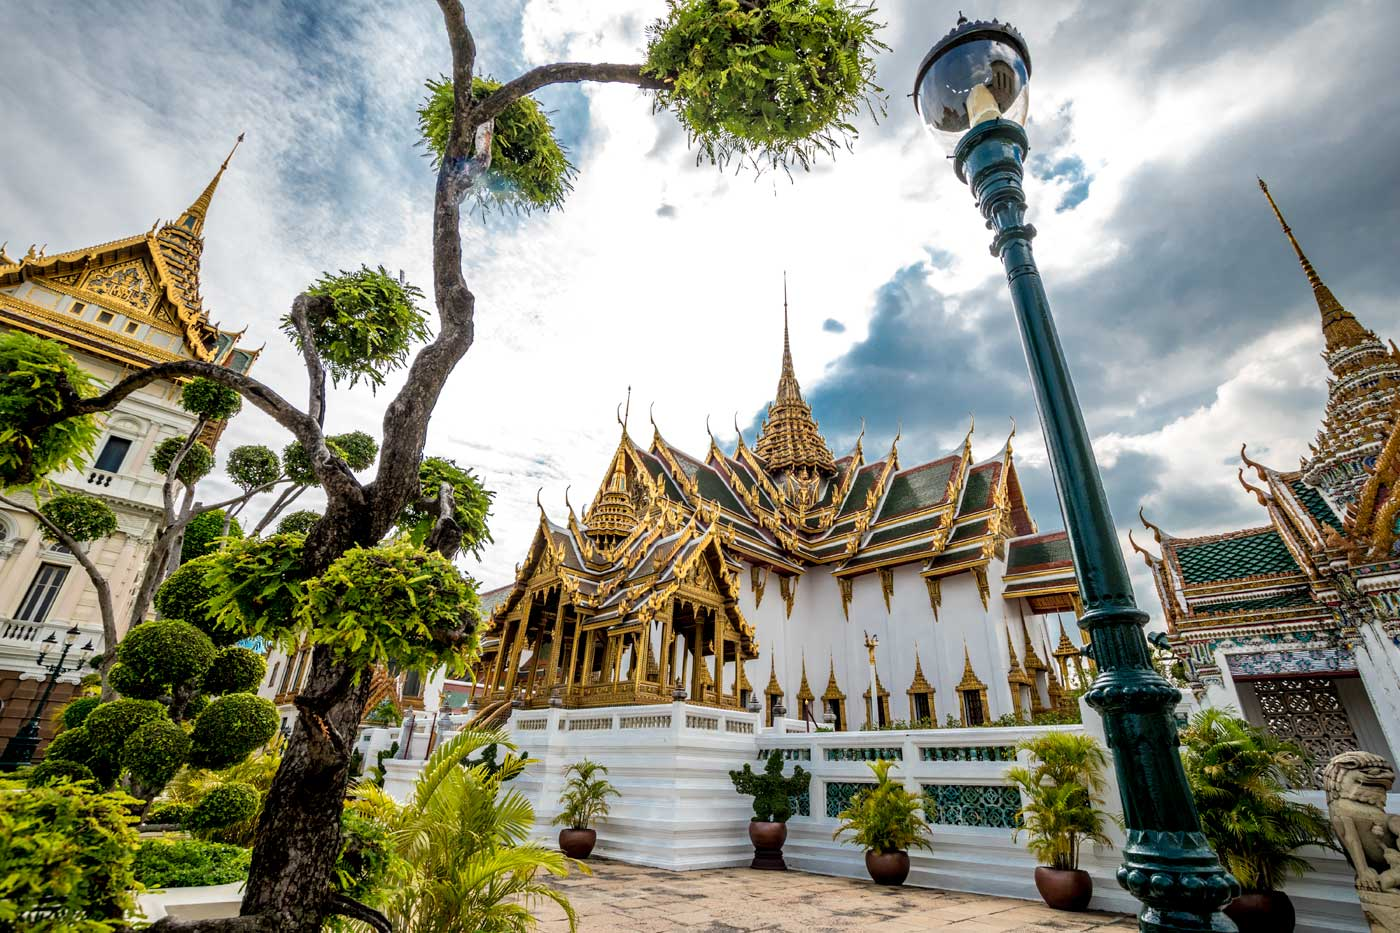 bangkok facts - kings palace